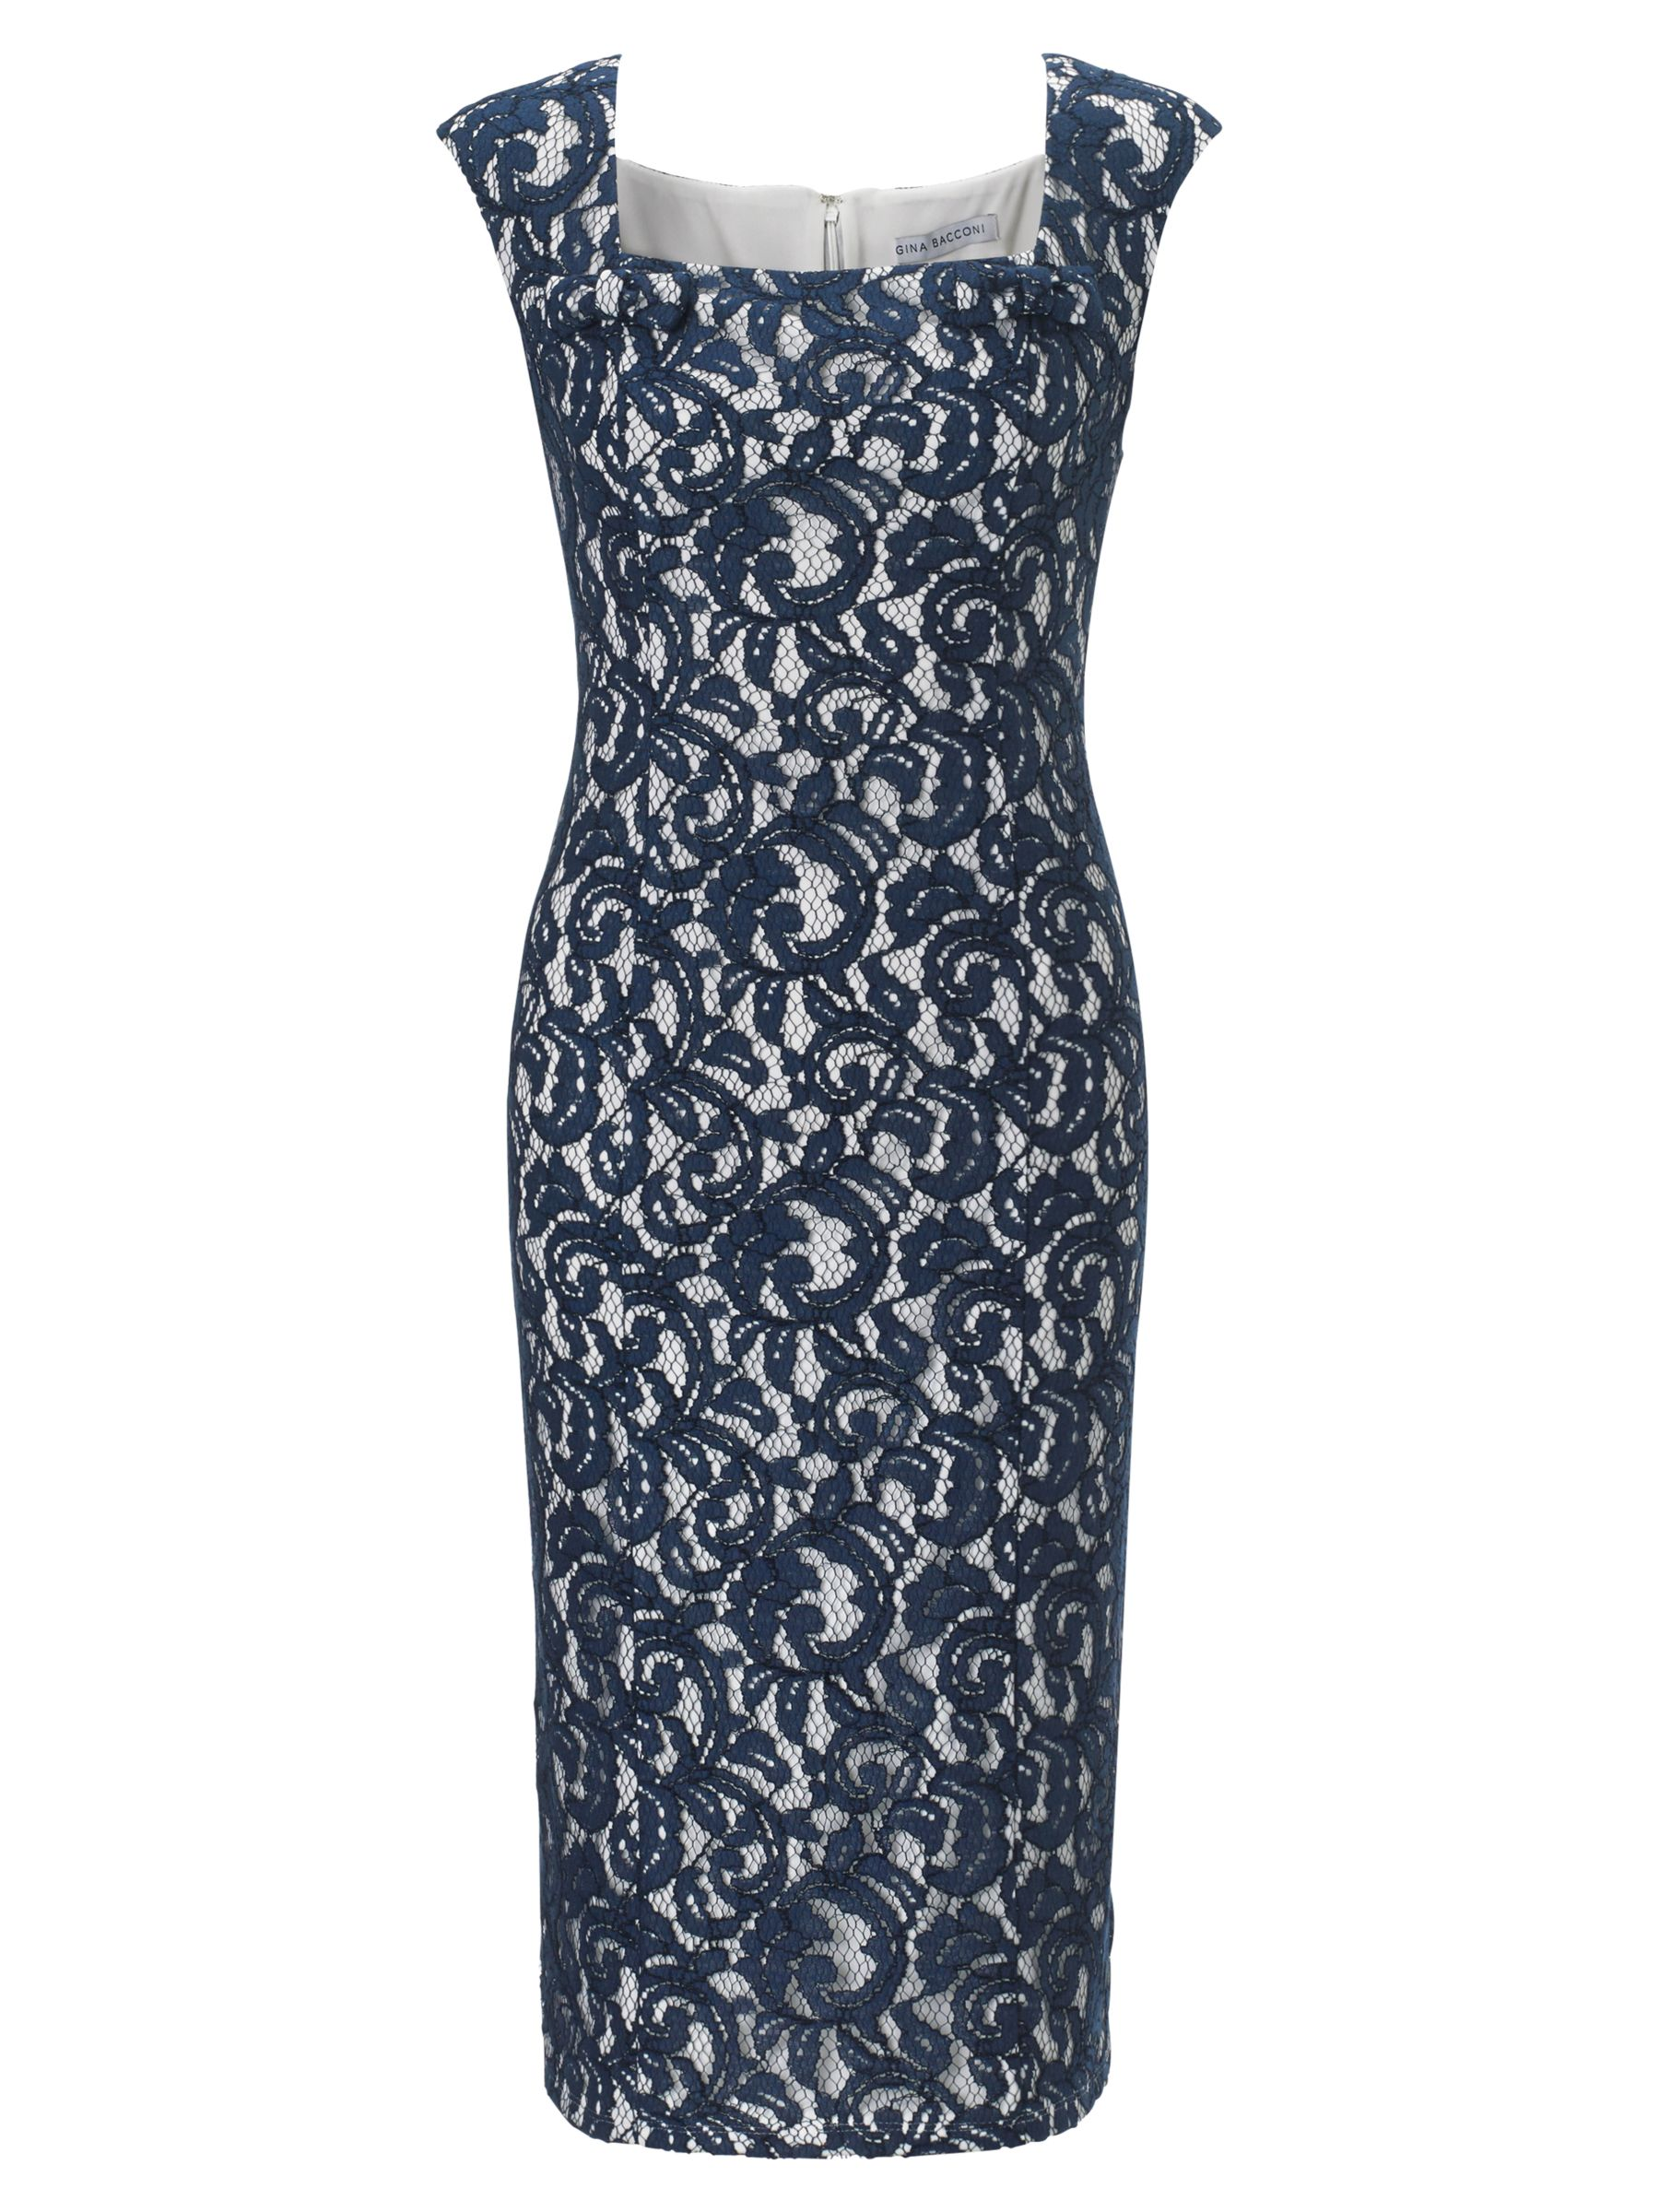 gina bacconi lace jersey bow trim dress navy, gina, bacconi, lace, jersey, bow, trim, dress, navy, gina bacconi, 20|16|22, clearance, womenswear offers, womens dresses offers, women, plus size, womens dresses, special offers, 1173061